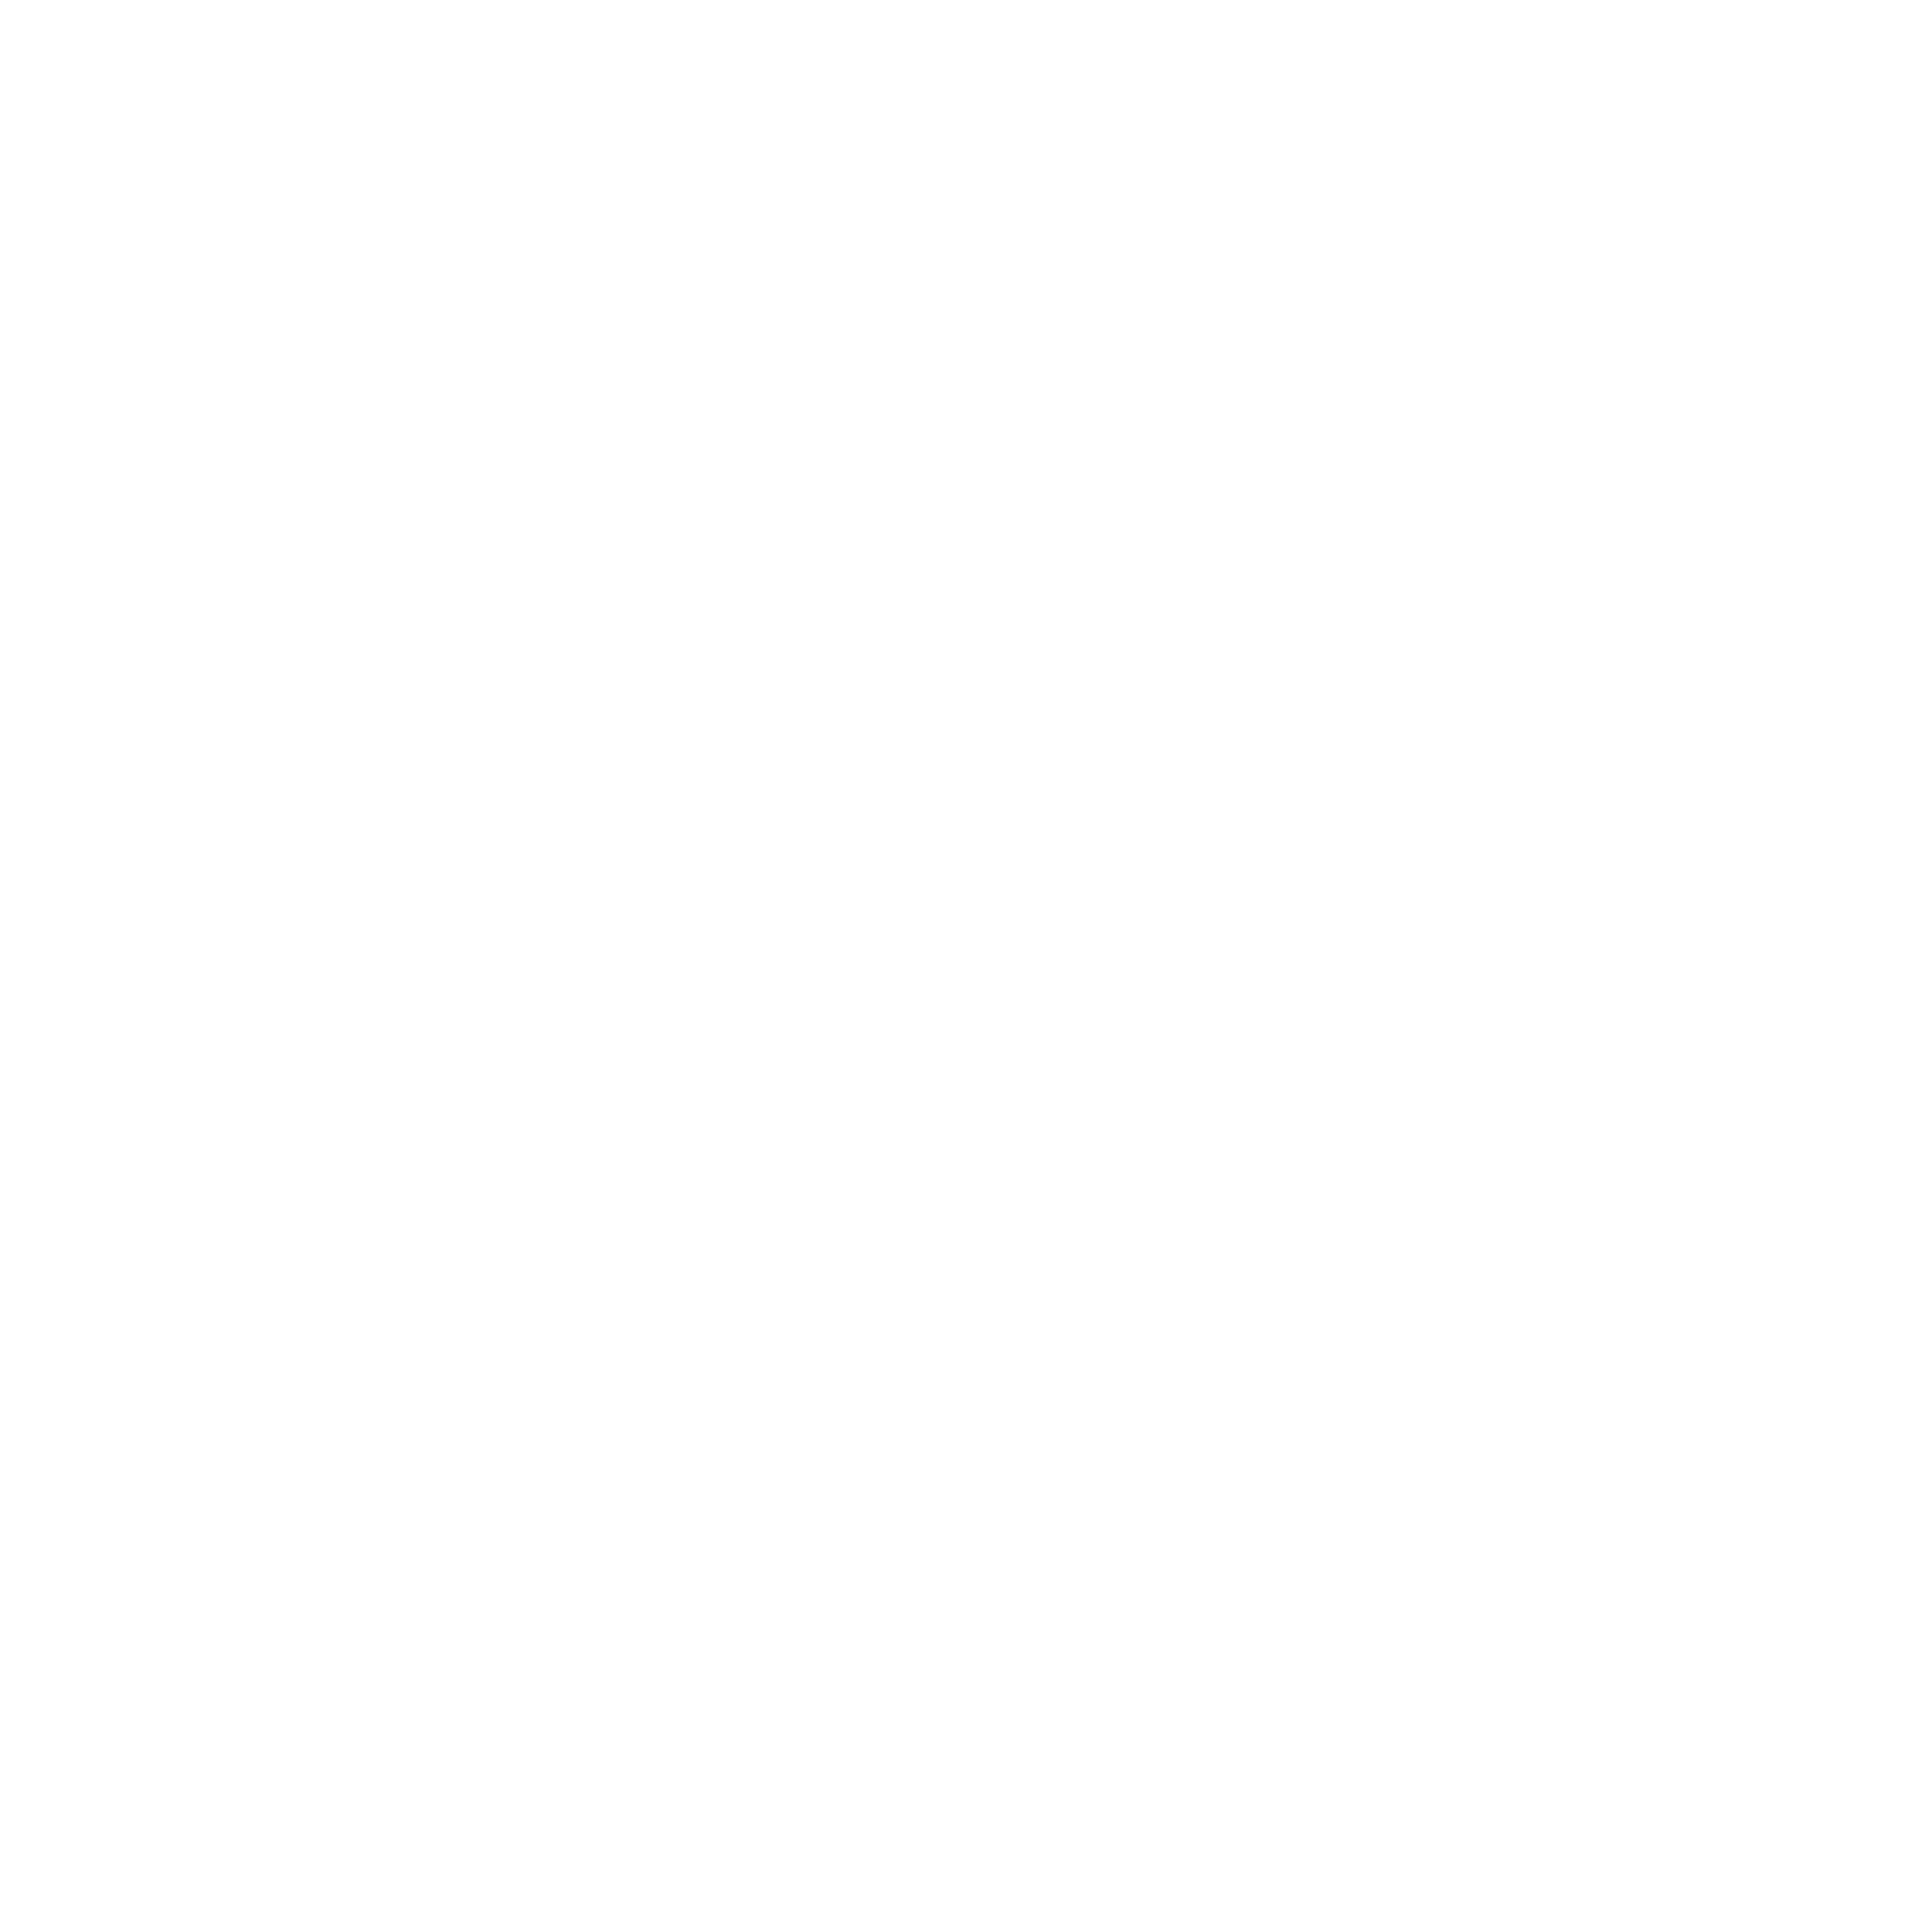 RR_Circle Icon-Positive-White.png